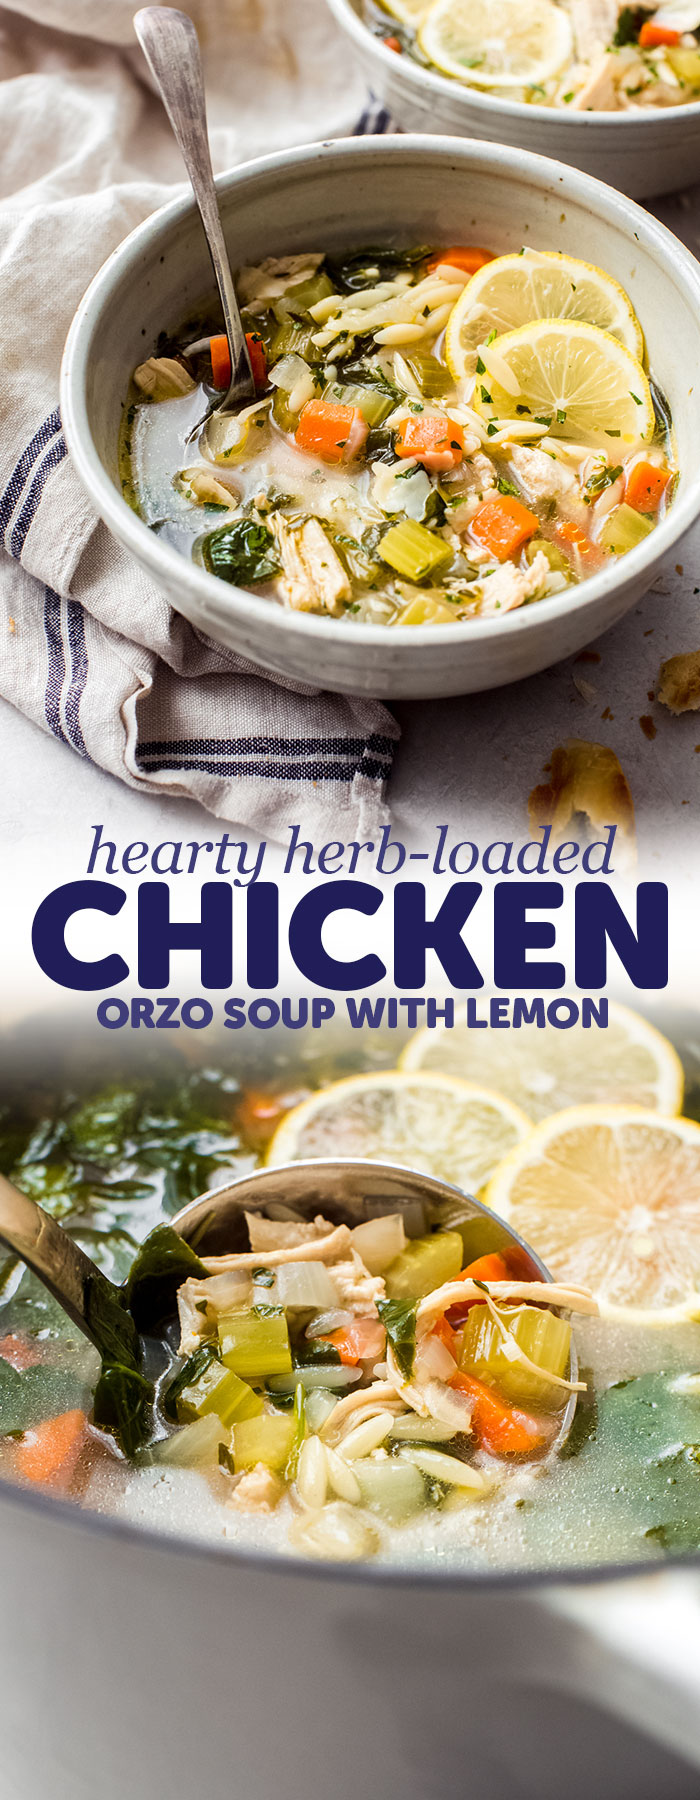 Herb-Loaded Lemon Chicken Orzo Soup - A hearty yet light herb-loaded lemon chicken orzo soup that is sure warm you right up! This soup is cozy and comforting and perfect, especially if you're feeling under the weather! #chickensoup #souprecipes #soup #chickennoodlesouprecipe | Littlespicejar.com